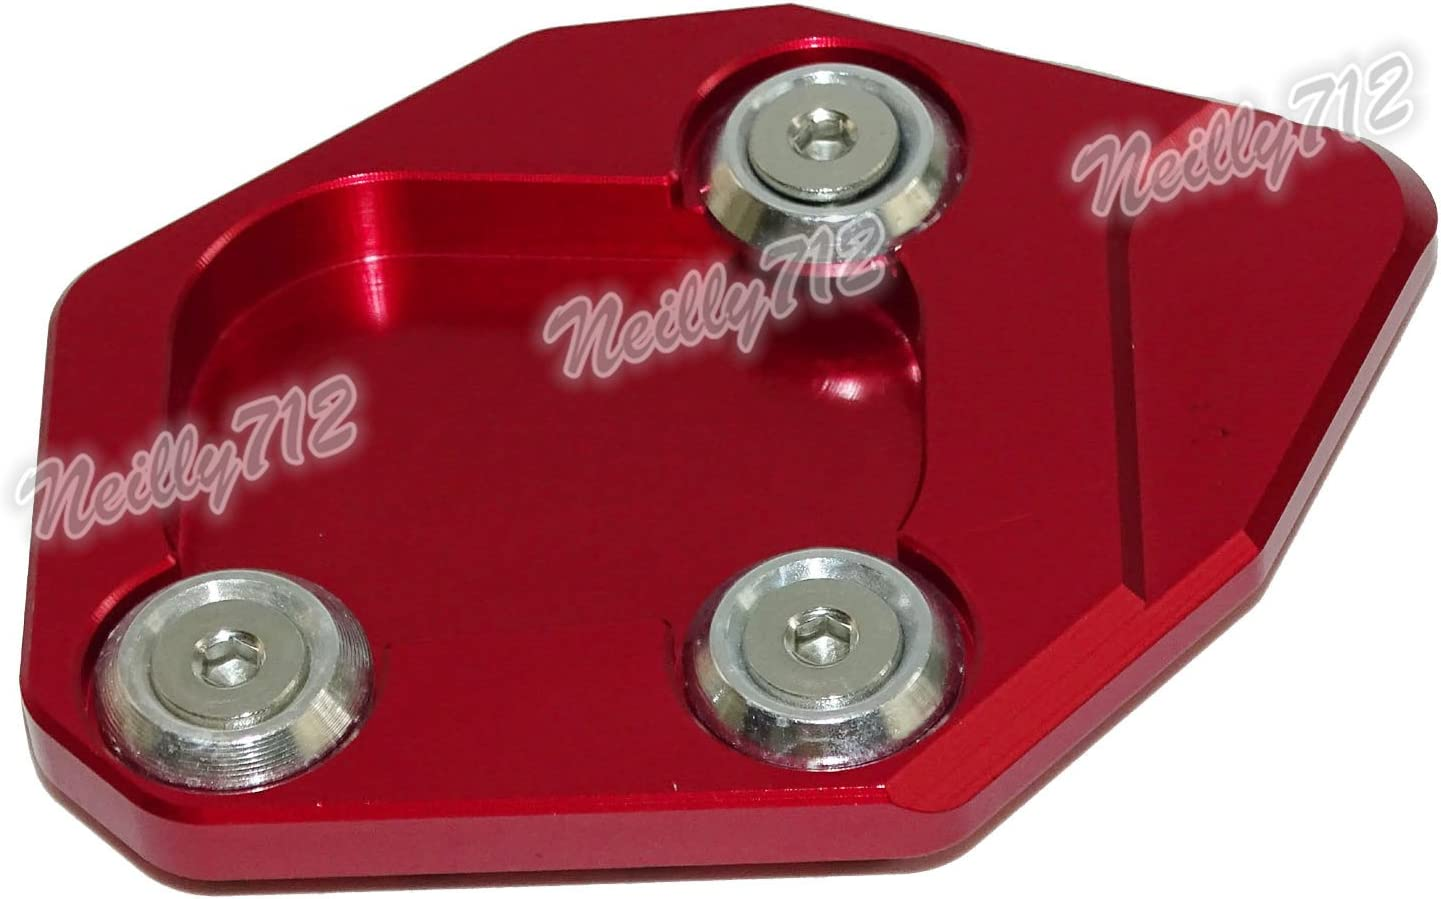 Red waase CBR600RR Motorcycle Kickstand Foot Side Stand Extension Pad Support Plate For Honda CBR 600 RR 2007 2008 2009 2010 2011 2012 2013 2014 2015 2016